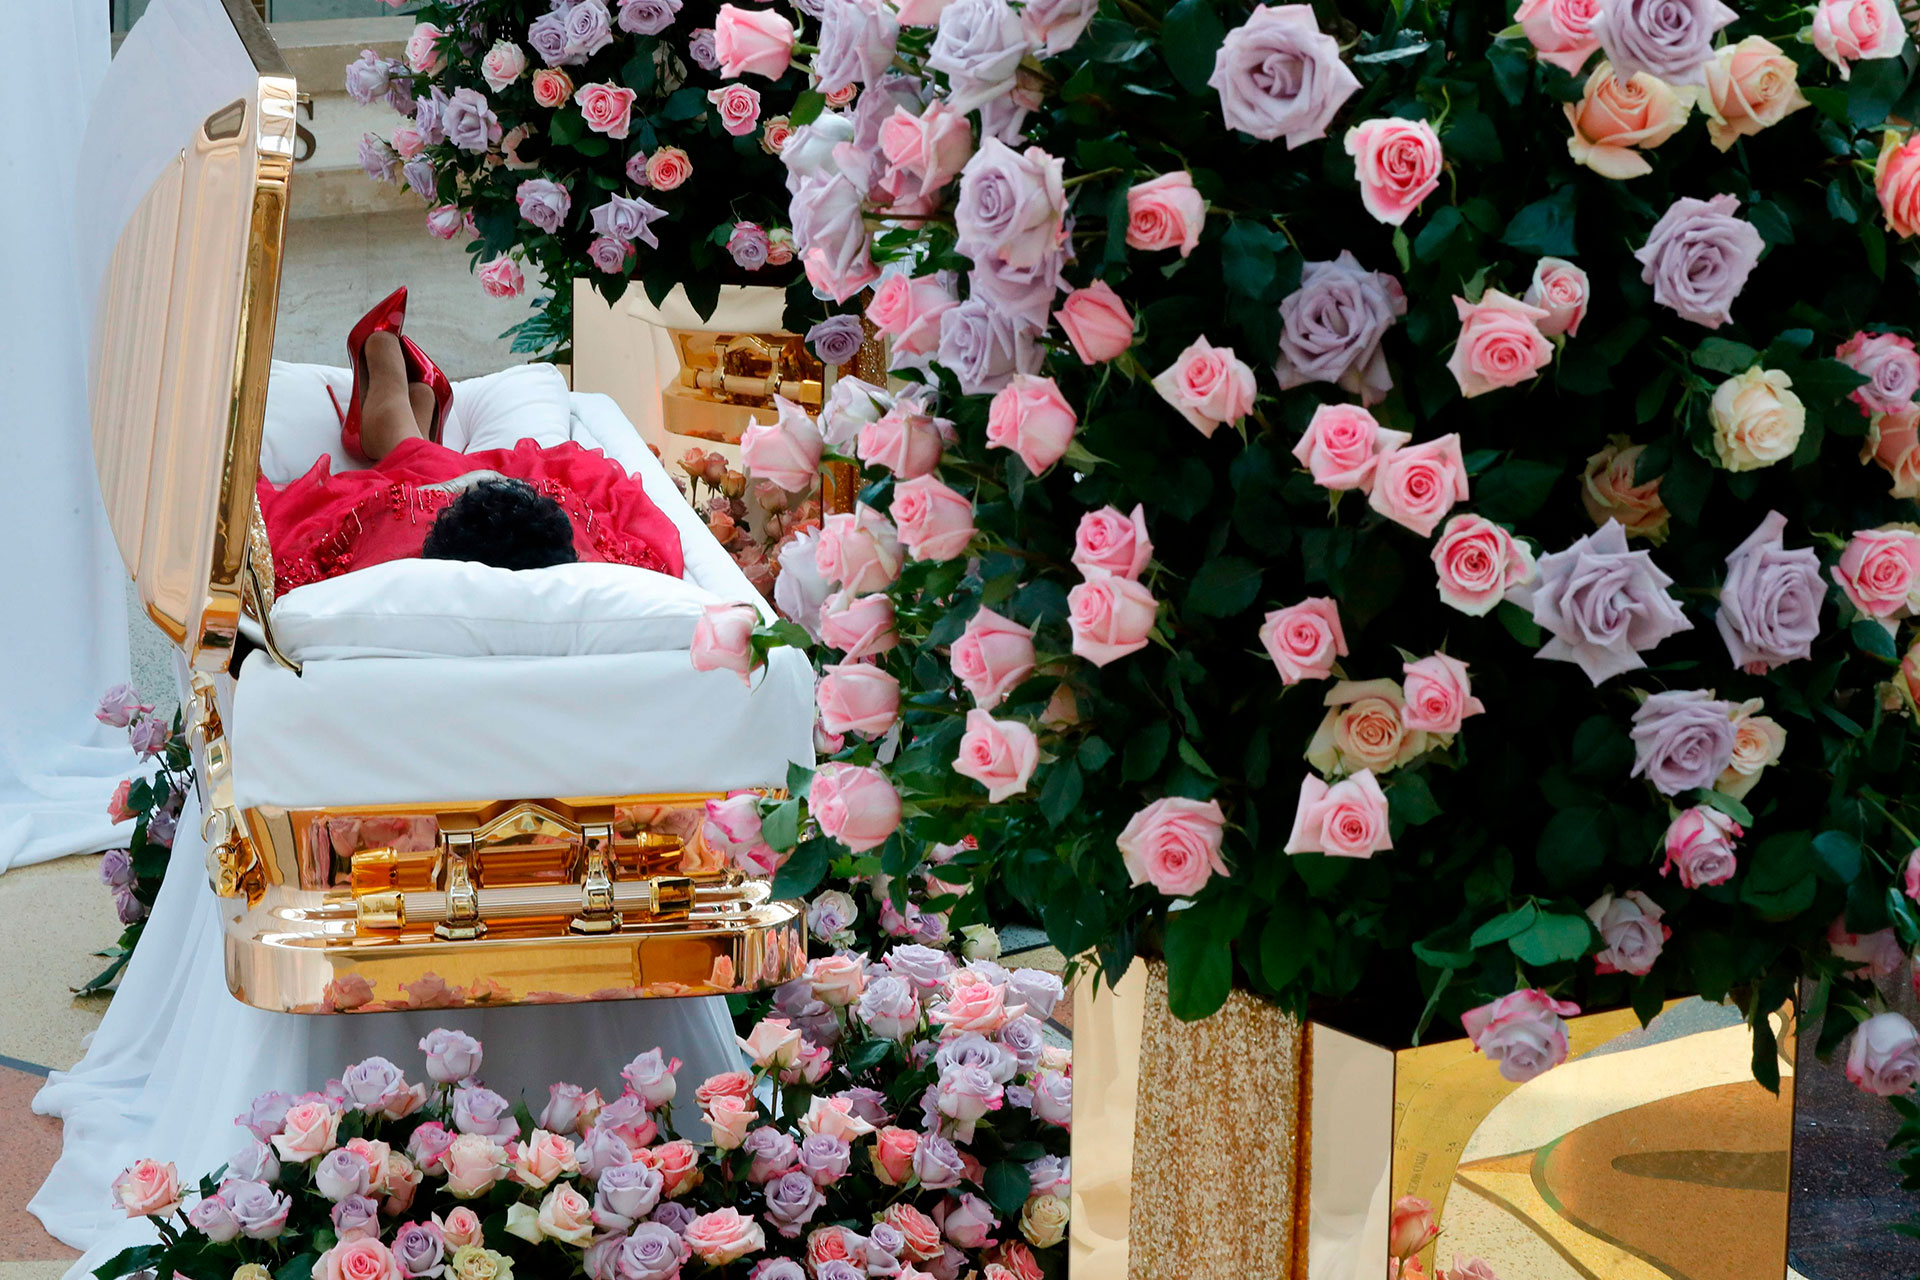 Aretha Franklin was waked in a gold-plated casket